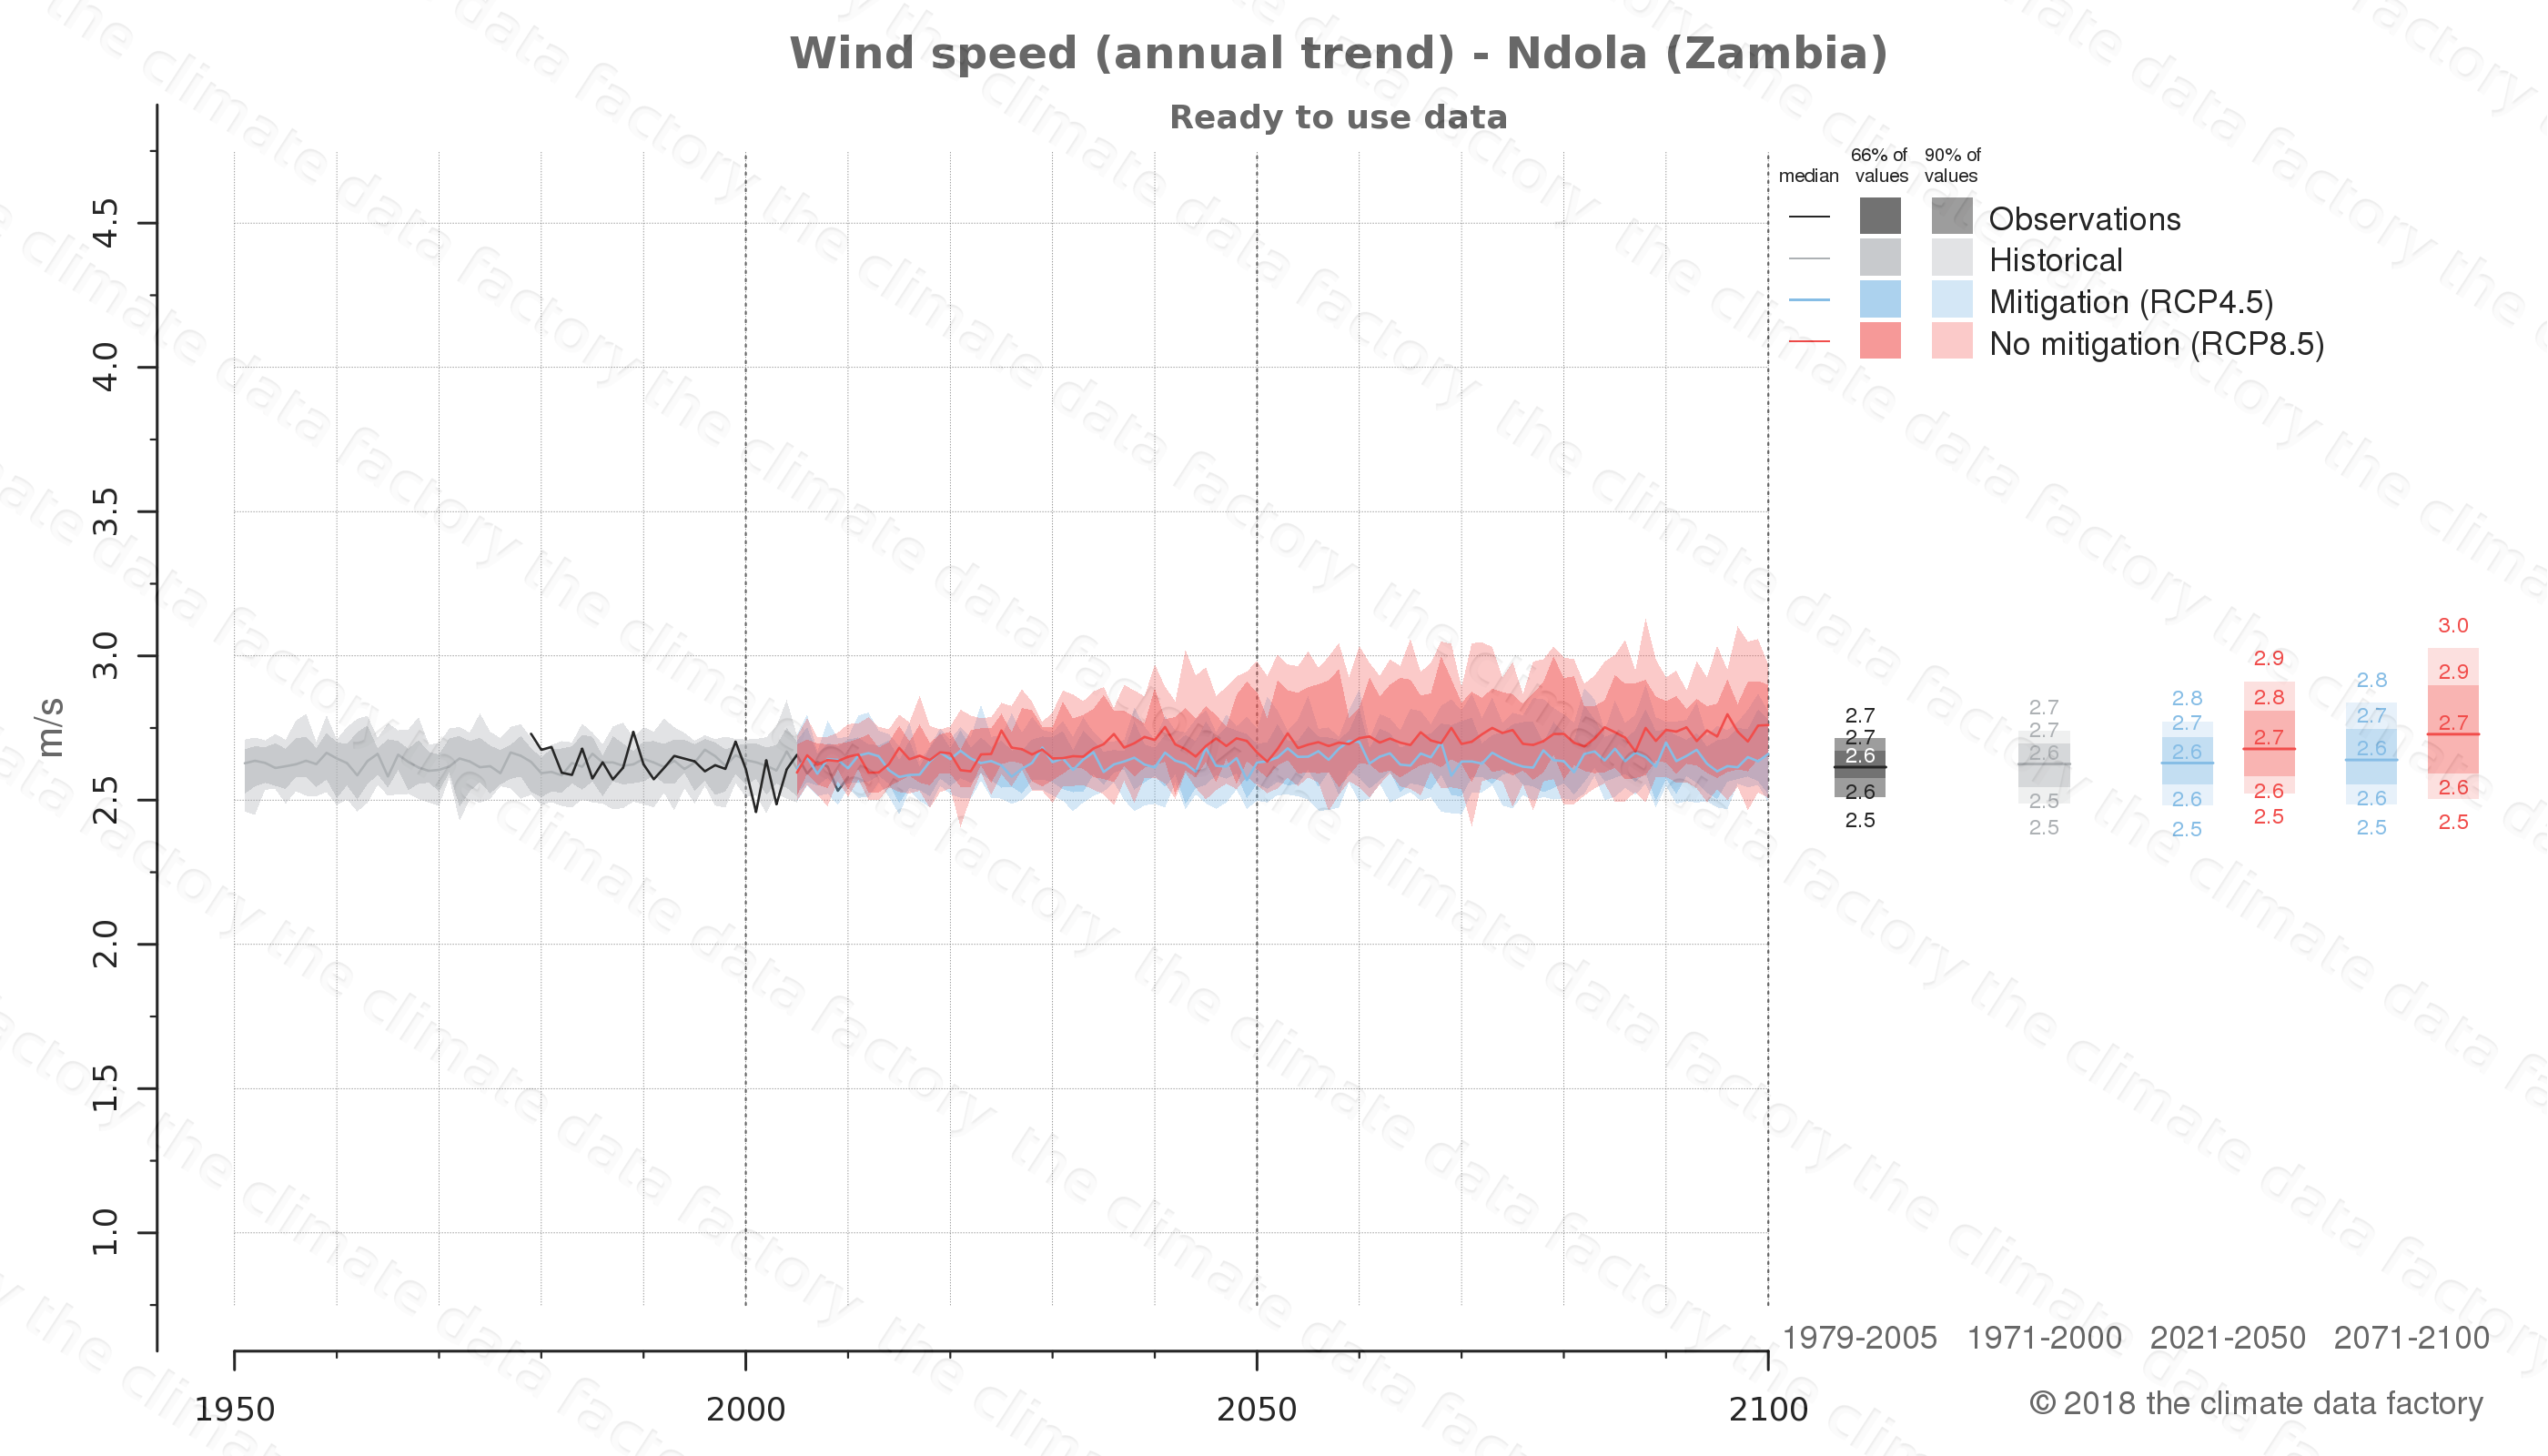 climate change data policy adaptation climate graph city data wind-speed ndola zambia